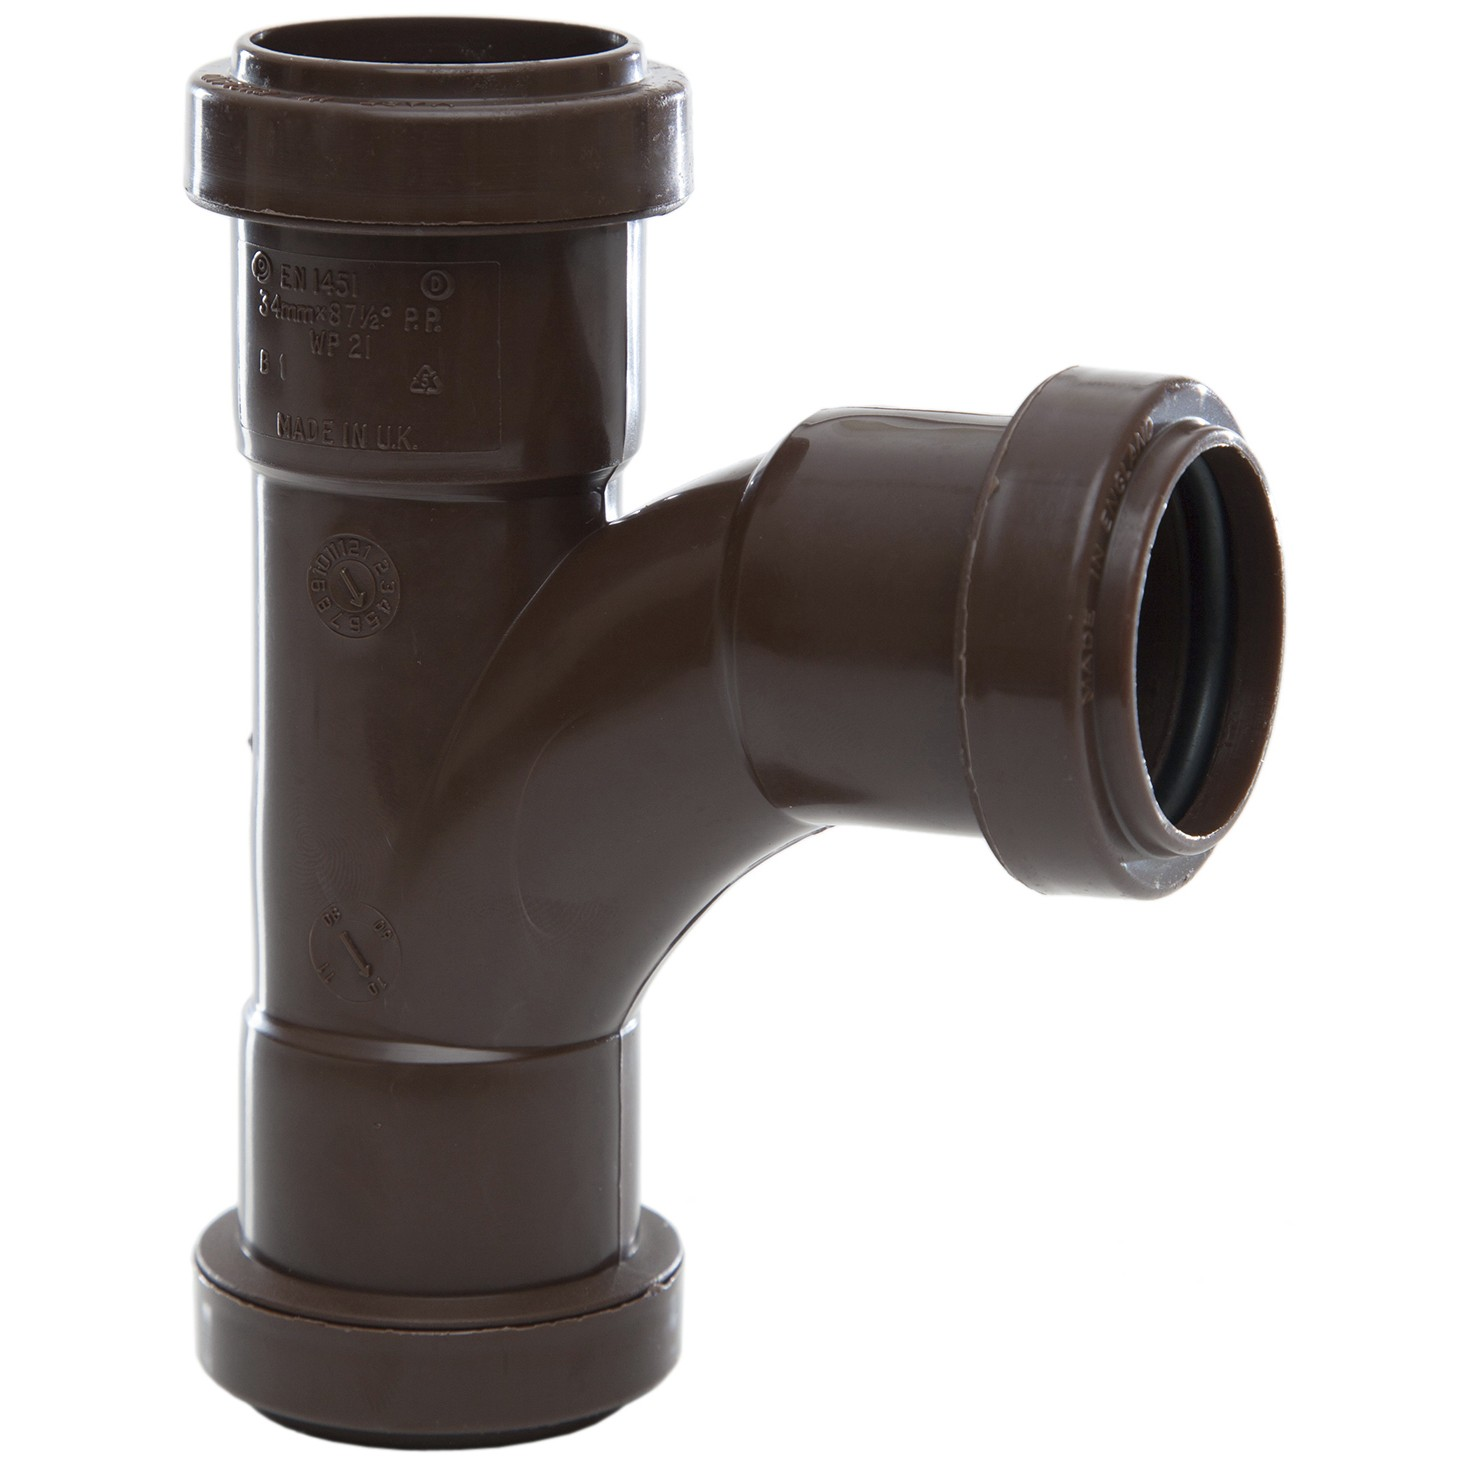 Polypipe 32mm Push Fit Waste 91.25 Degree Swept Tee - Brown